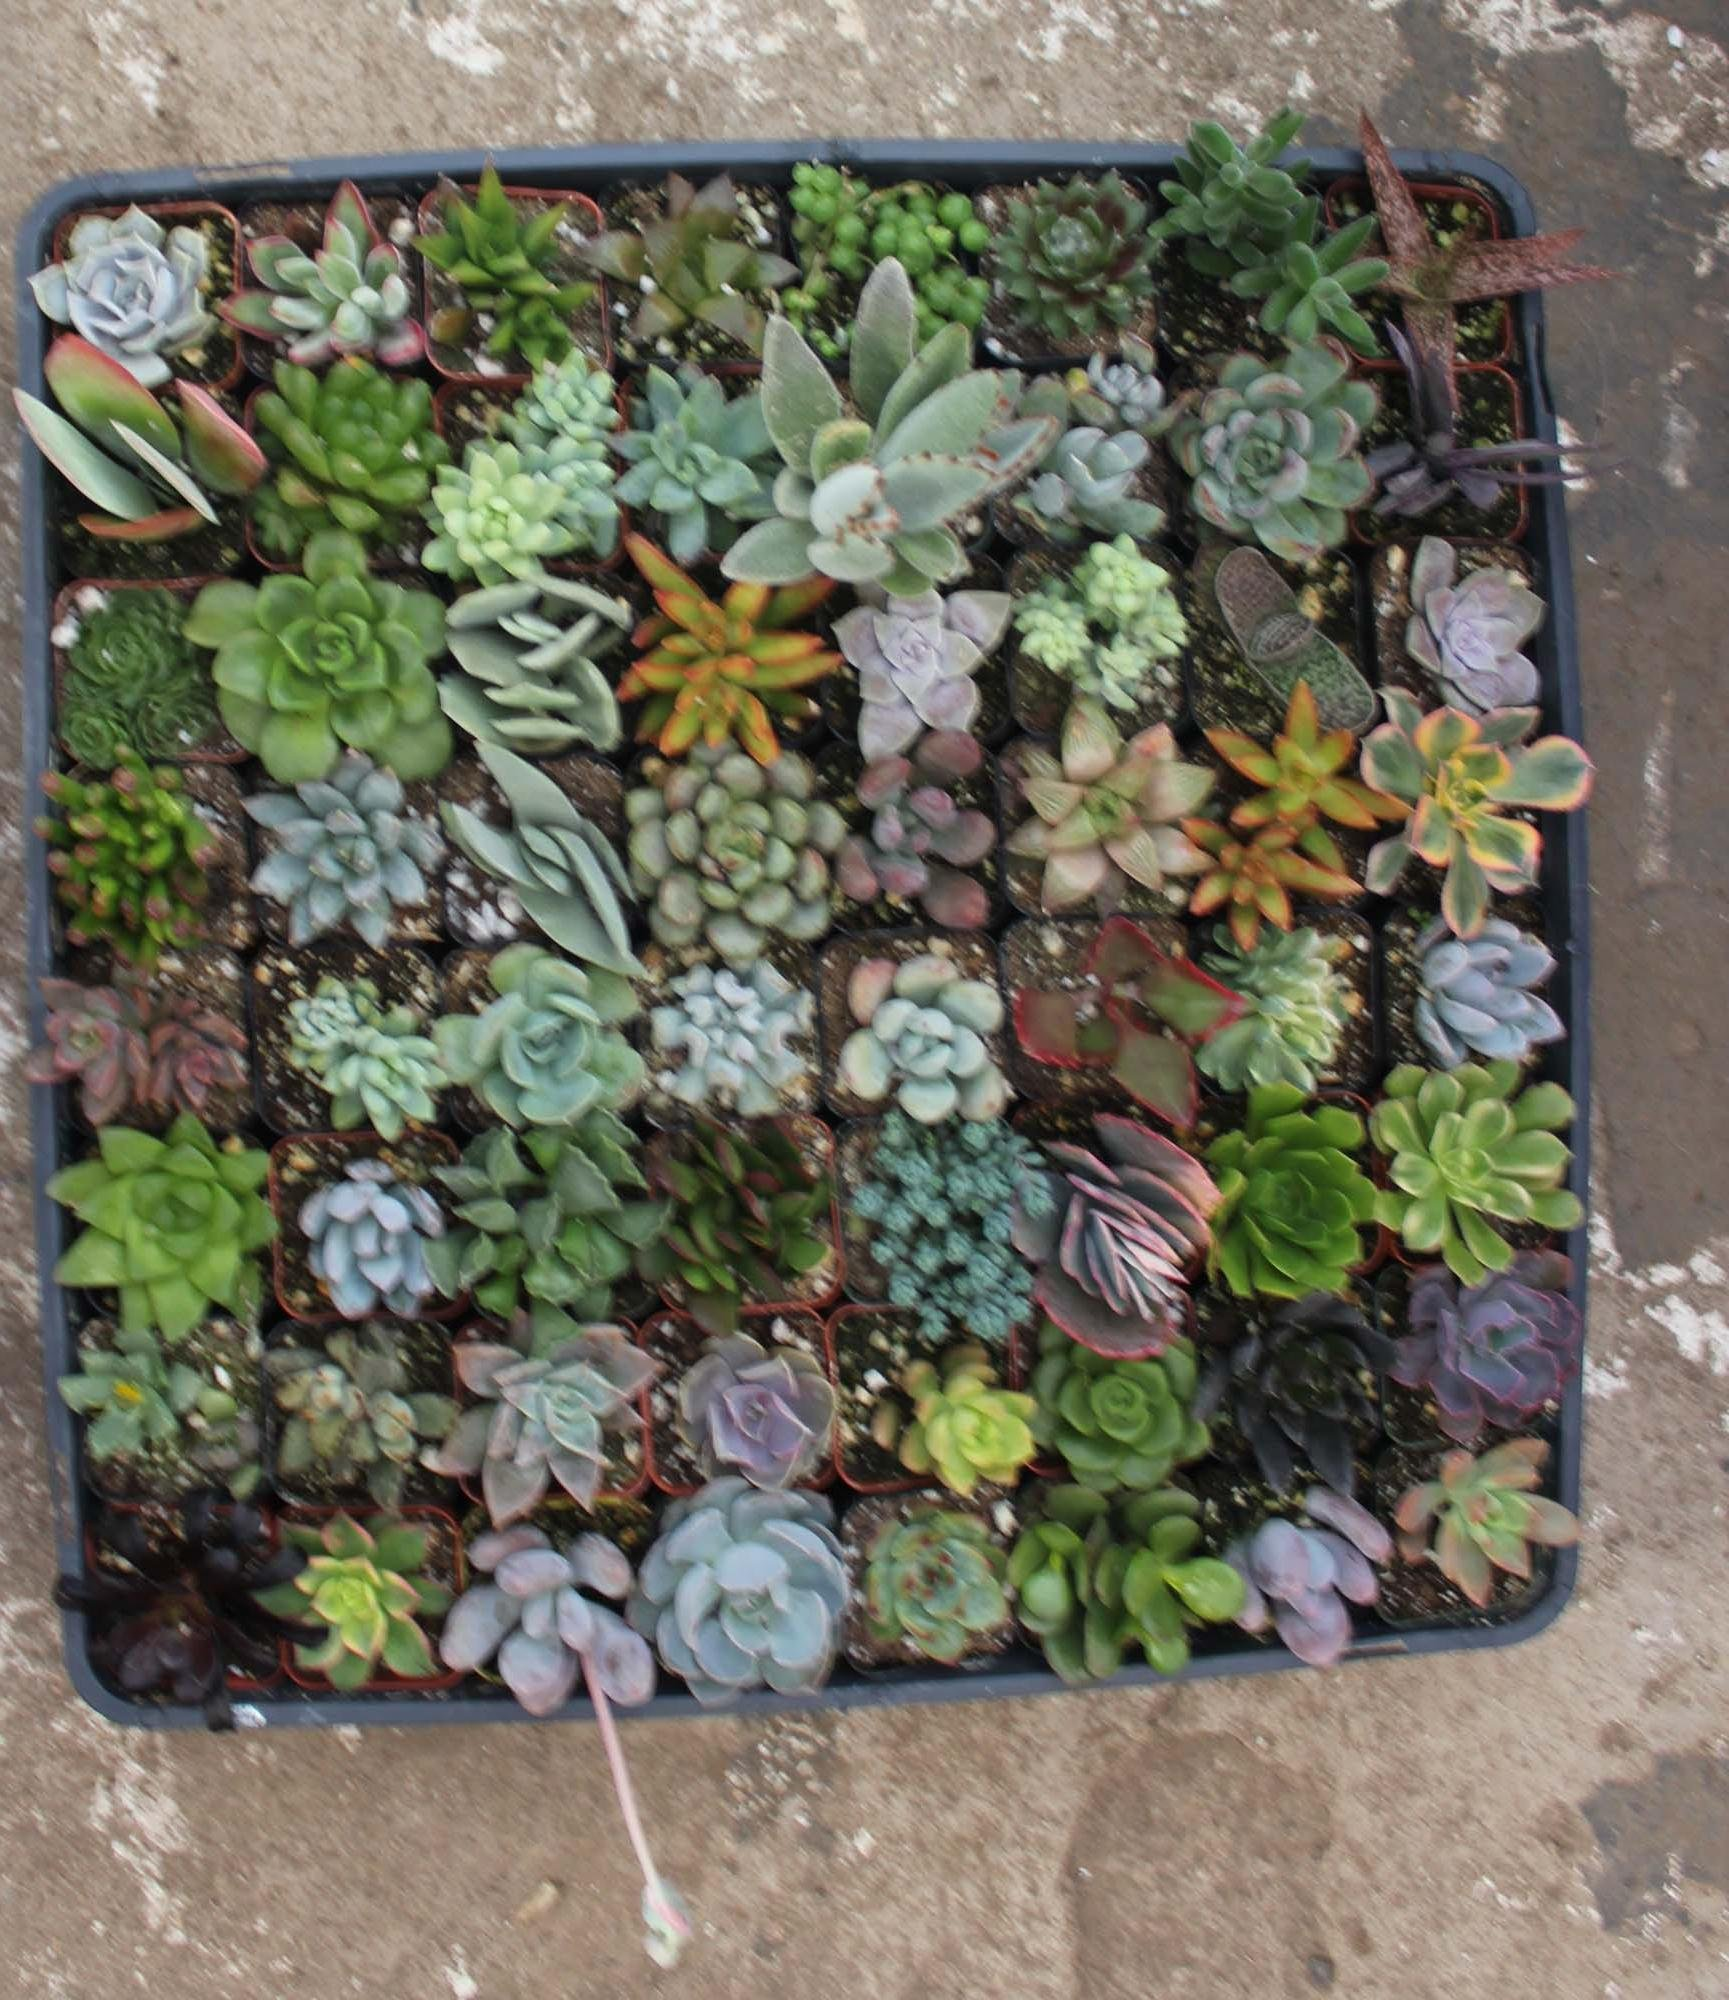 Jiimz 50 Mixed Succulent Plants Great for Weddings, Center Pieces, Baby Showers, Party Favors